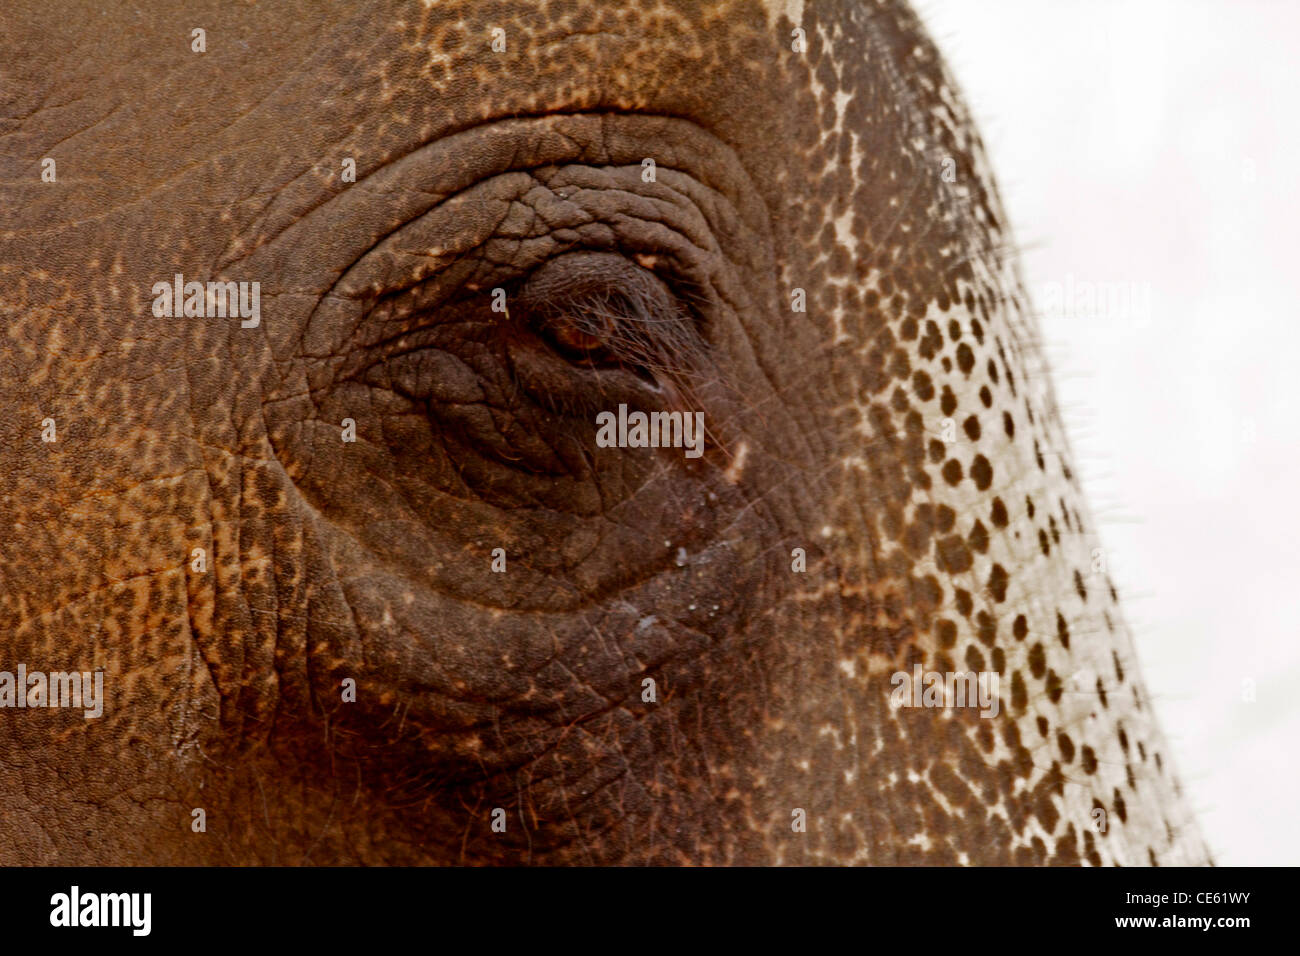 Close up of an Indian elephant's eye, in Jaipur, India Stock Photo